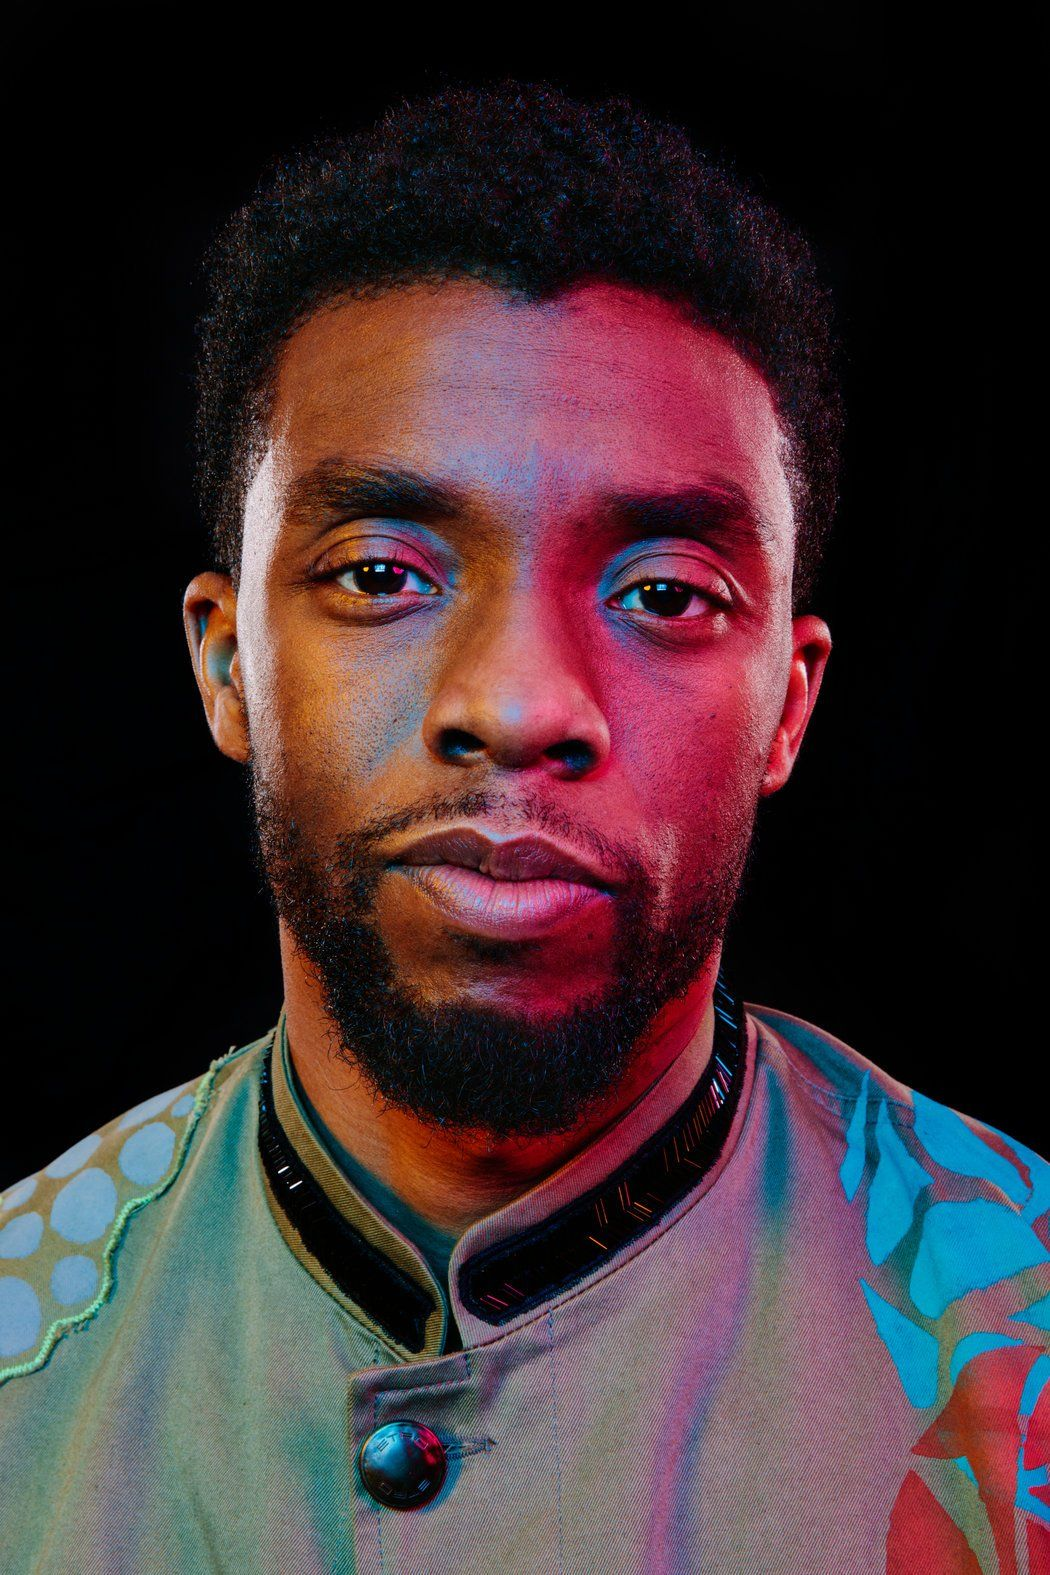 The Stars of 'Black Panther' Waited a Lifetime for This Moment | Black  panther, Chadwick boseman, Black panther marvel